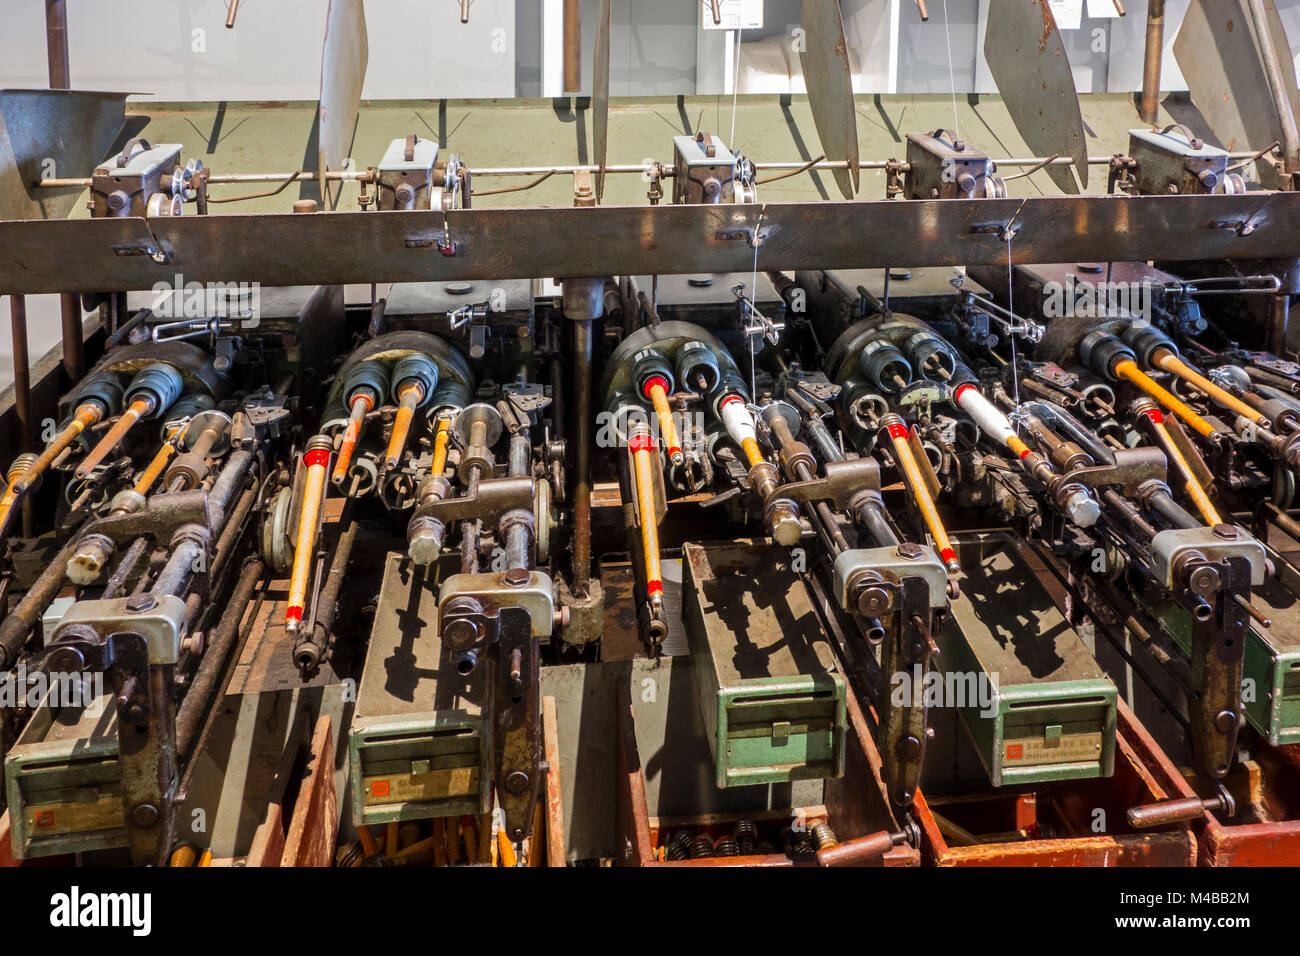 Bobbins with yarns on spool machine in cotton mill / spinning-mill - Stock Image